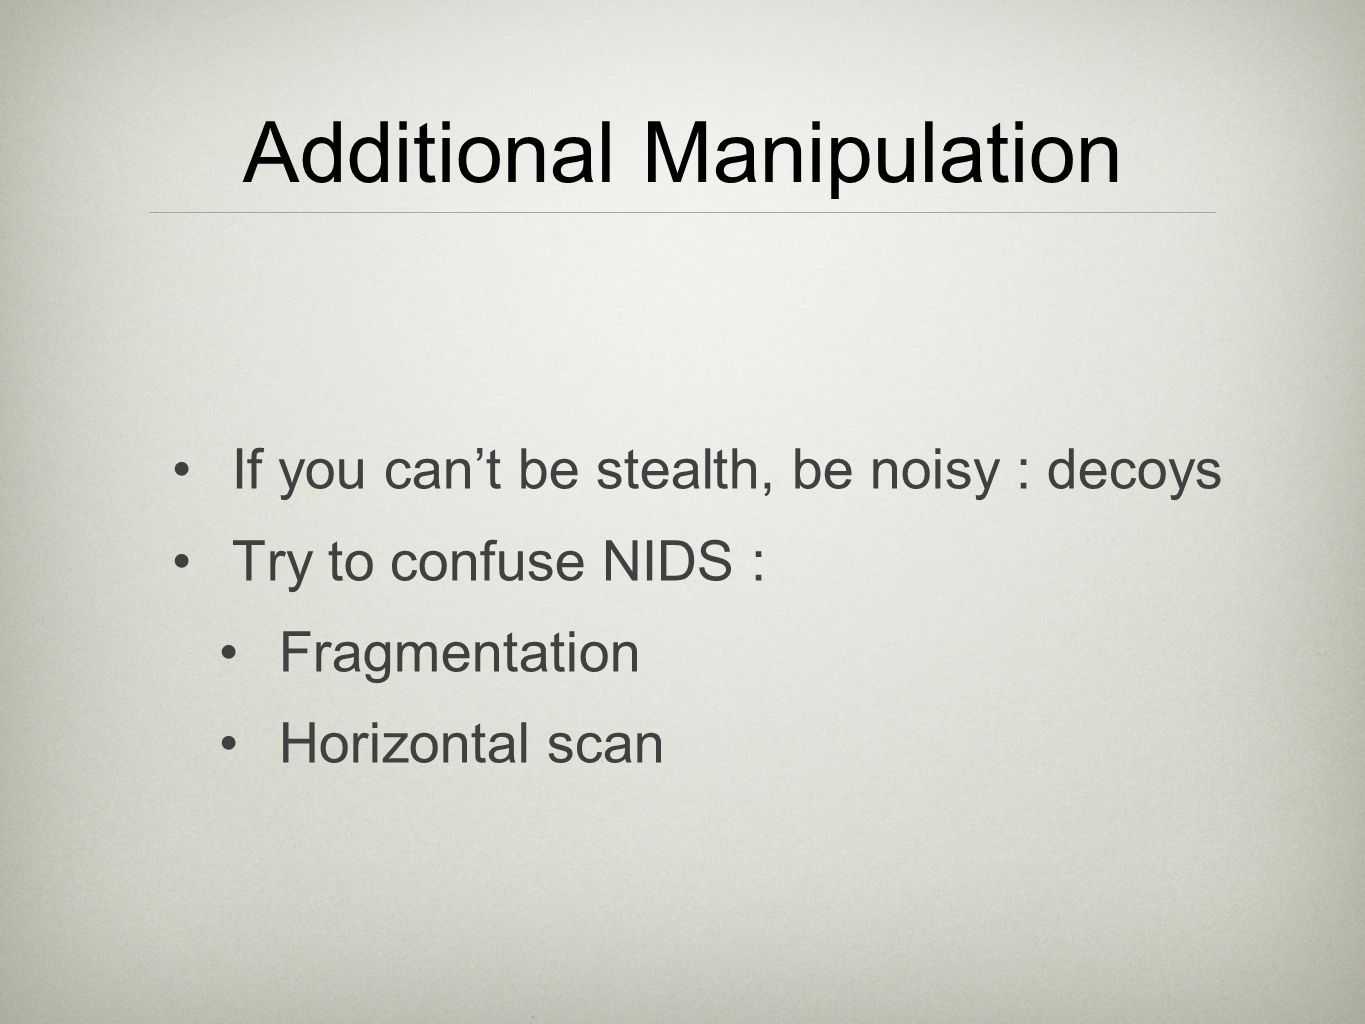 Additional Manipulation If you can't be stealth, be noisy : decoys Try to confuse NIDS : Fragmentation Horizontal scan